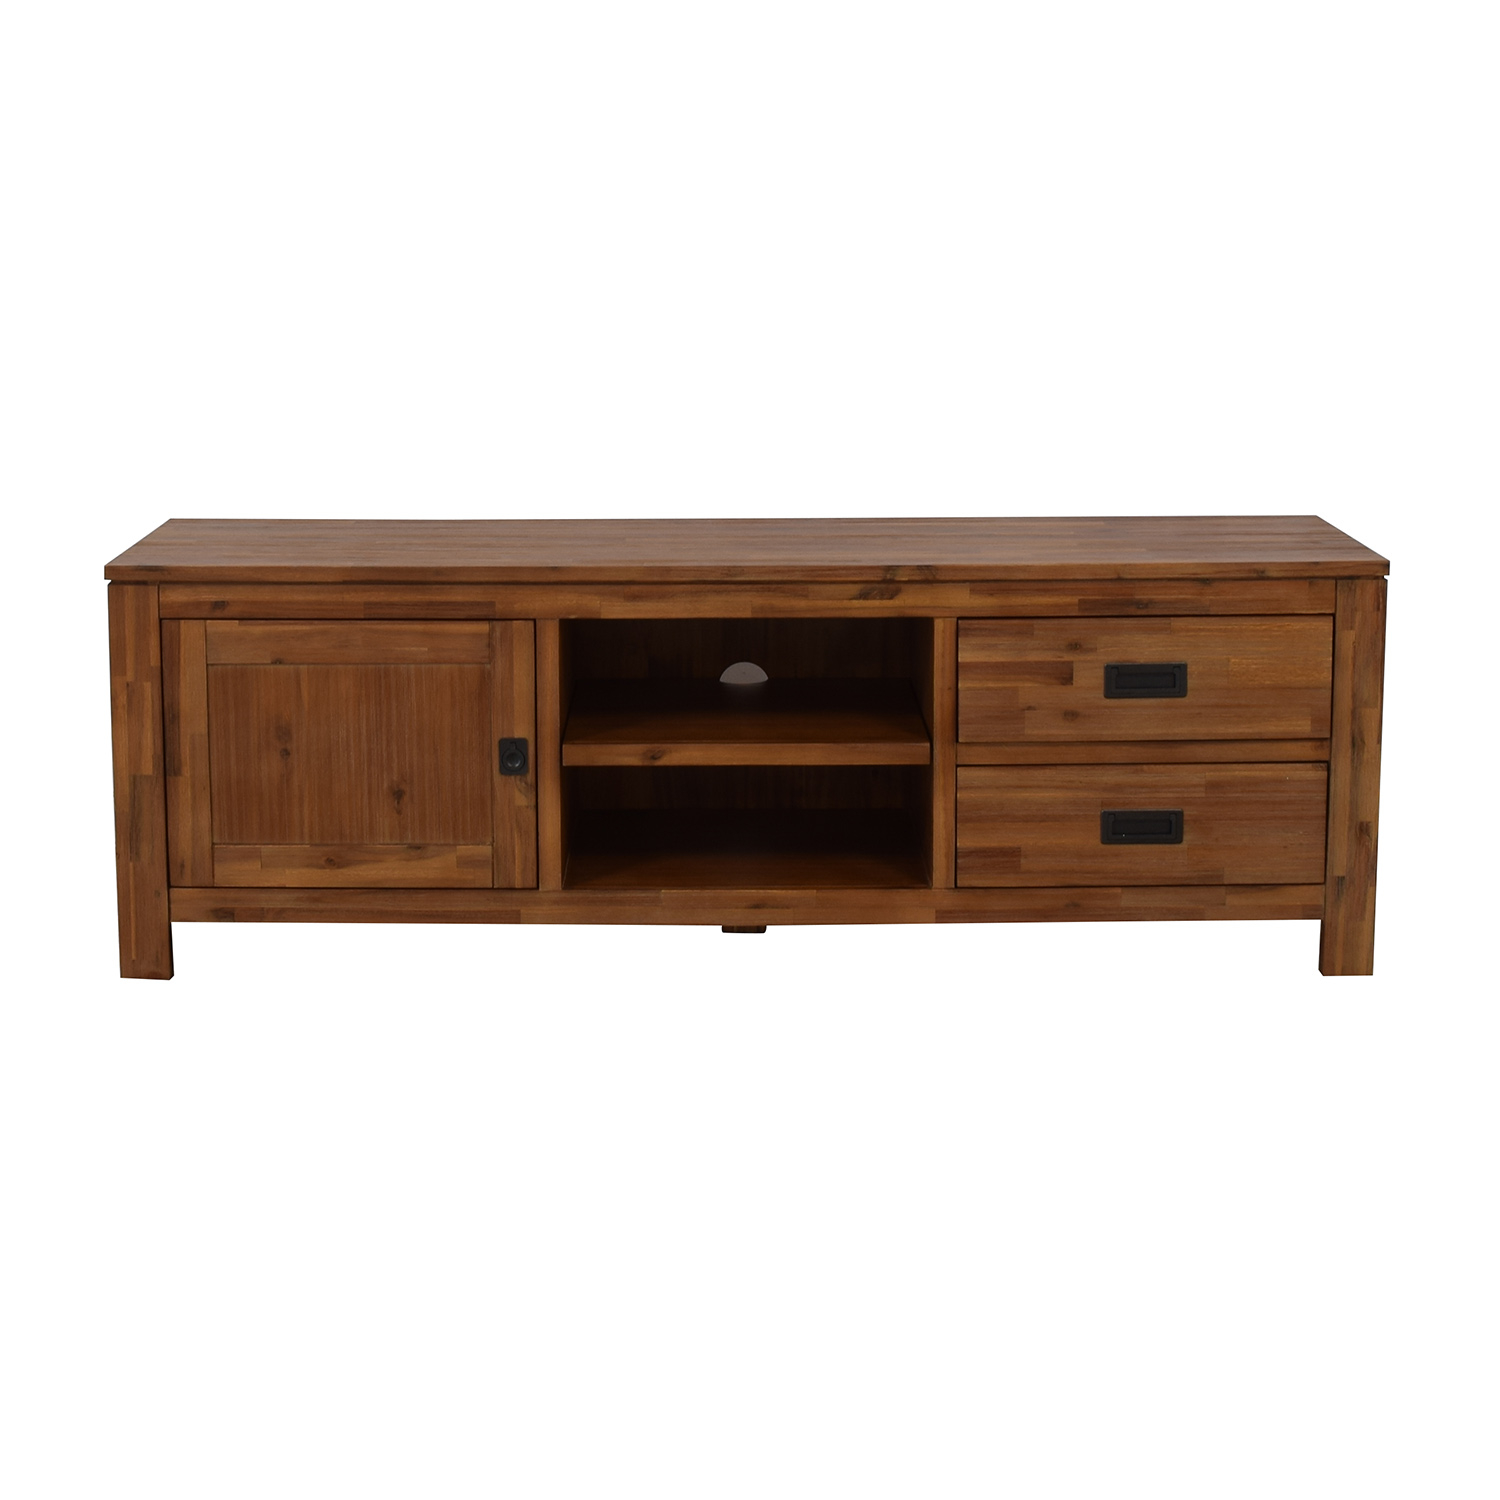 buy Macy's Cresent Fine Furniture Wooden TV Stand Macy's Storage